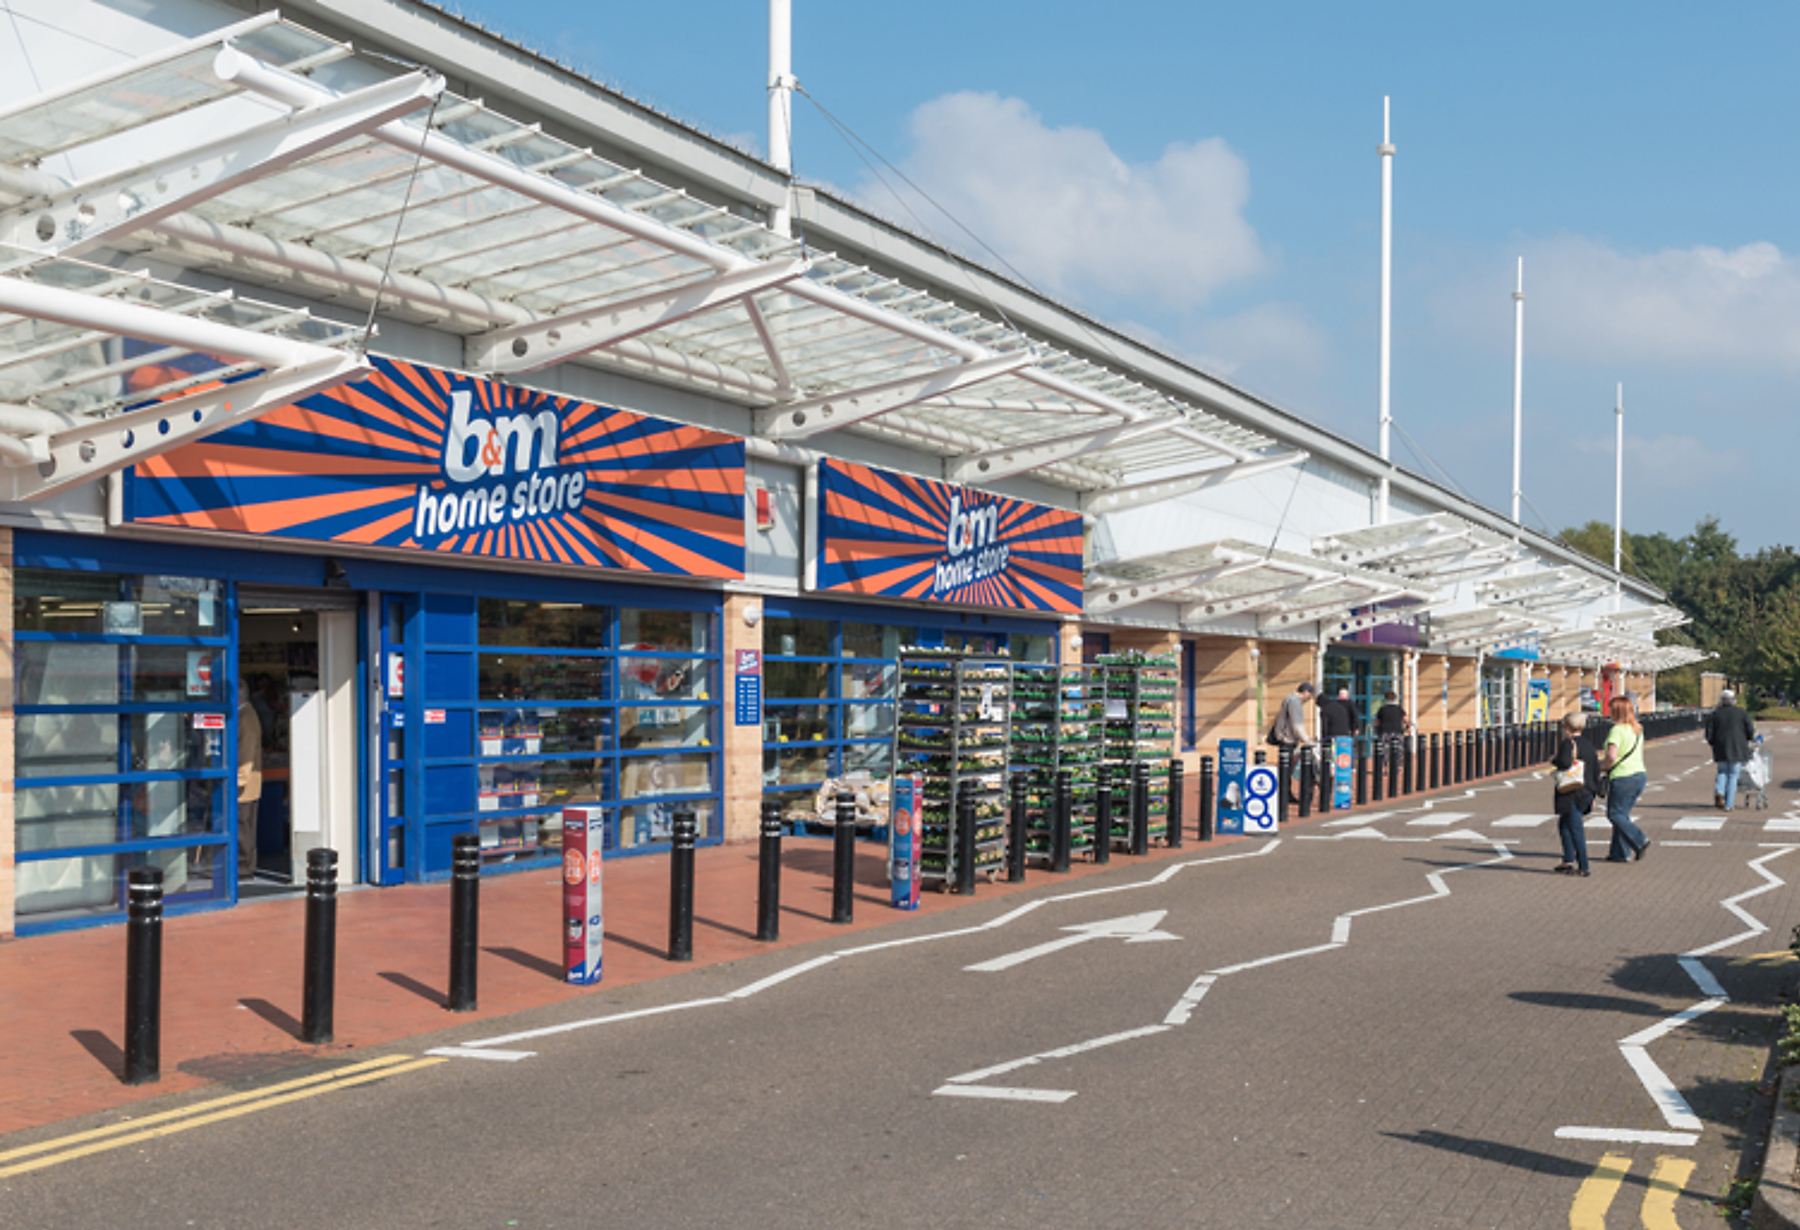 CR_RW_2295_Cardiff_Bay_Retail_Park_Cardiff_picture_7_p8_1800x1440